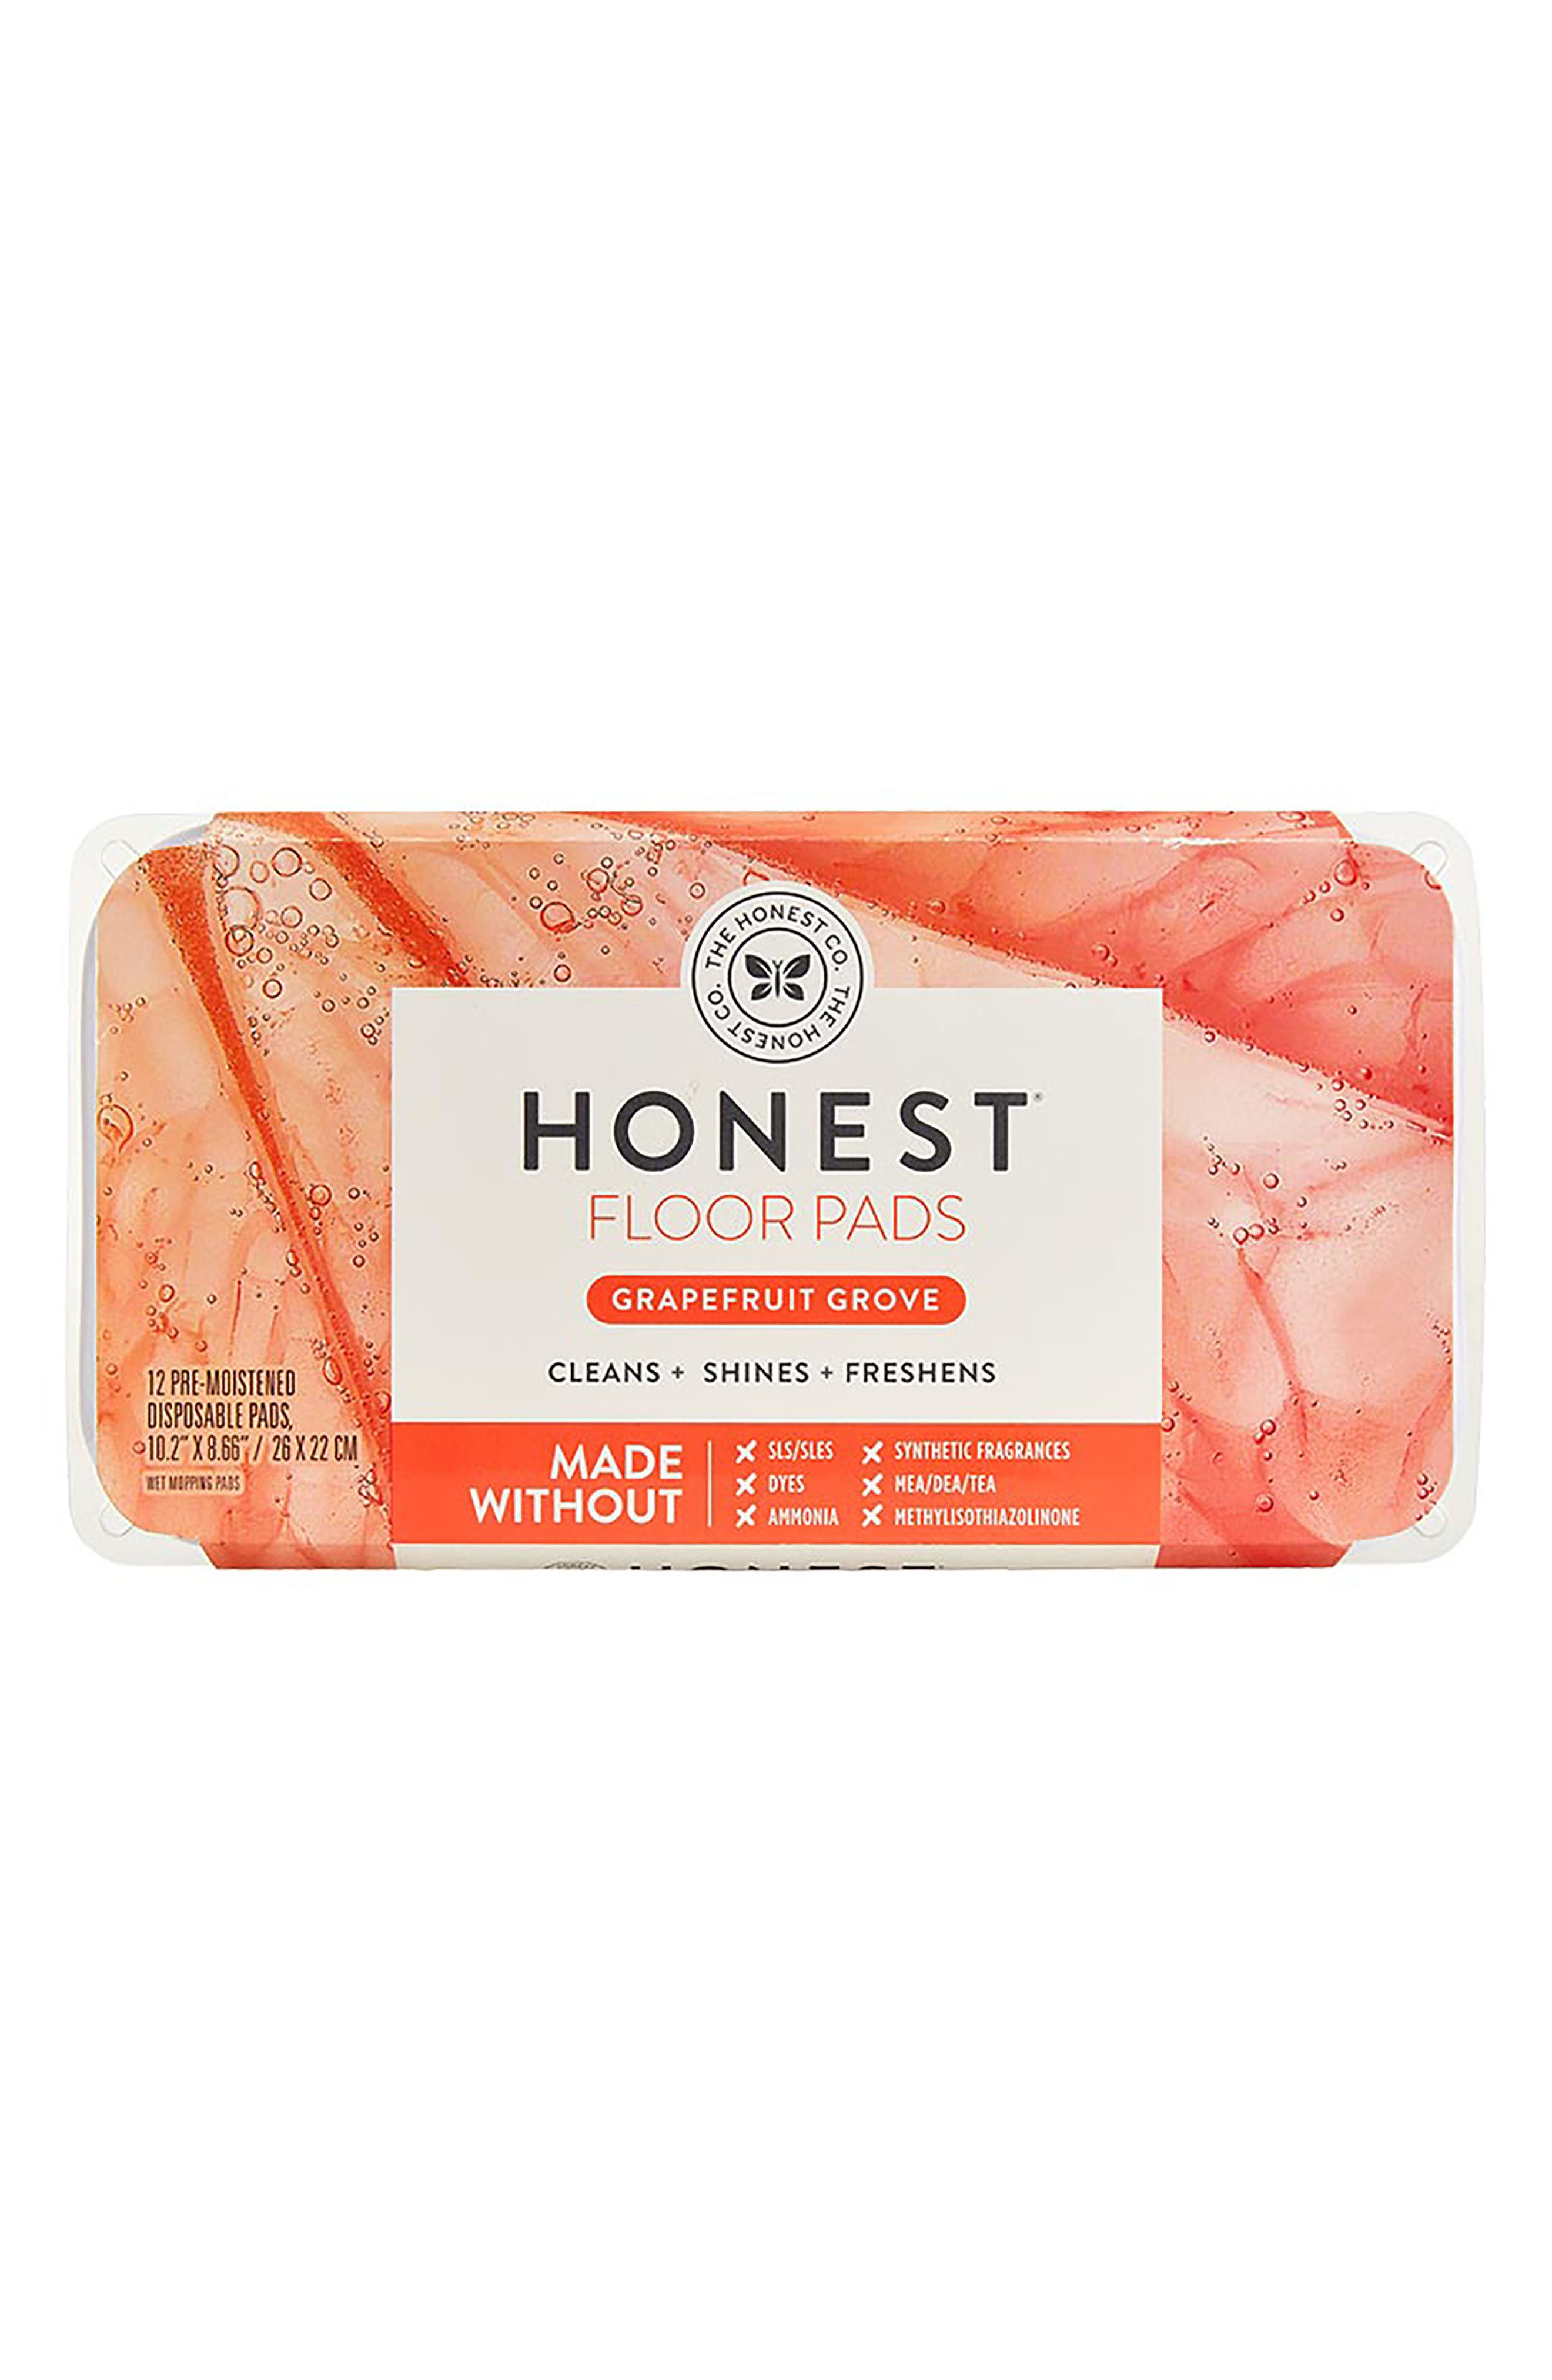 The Honest Company Grapefruit Grove Floor Mopping Pads